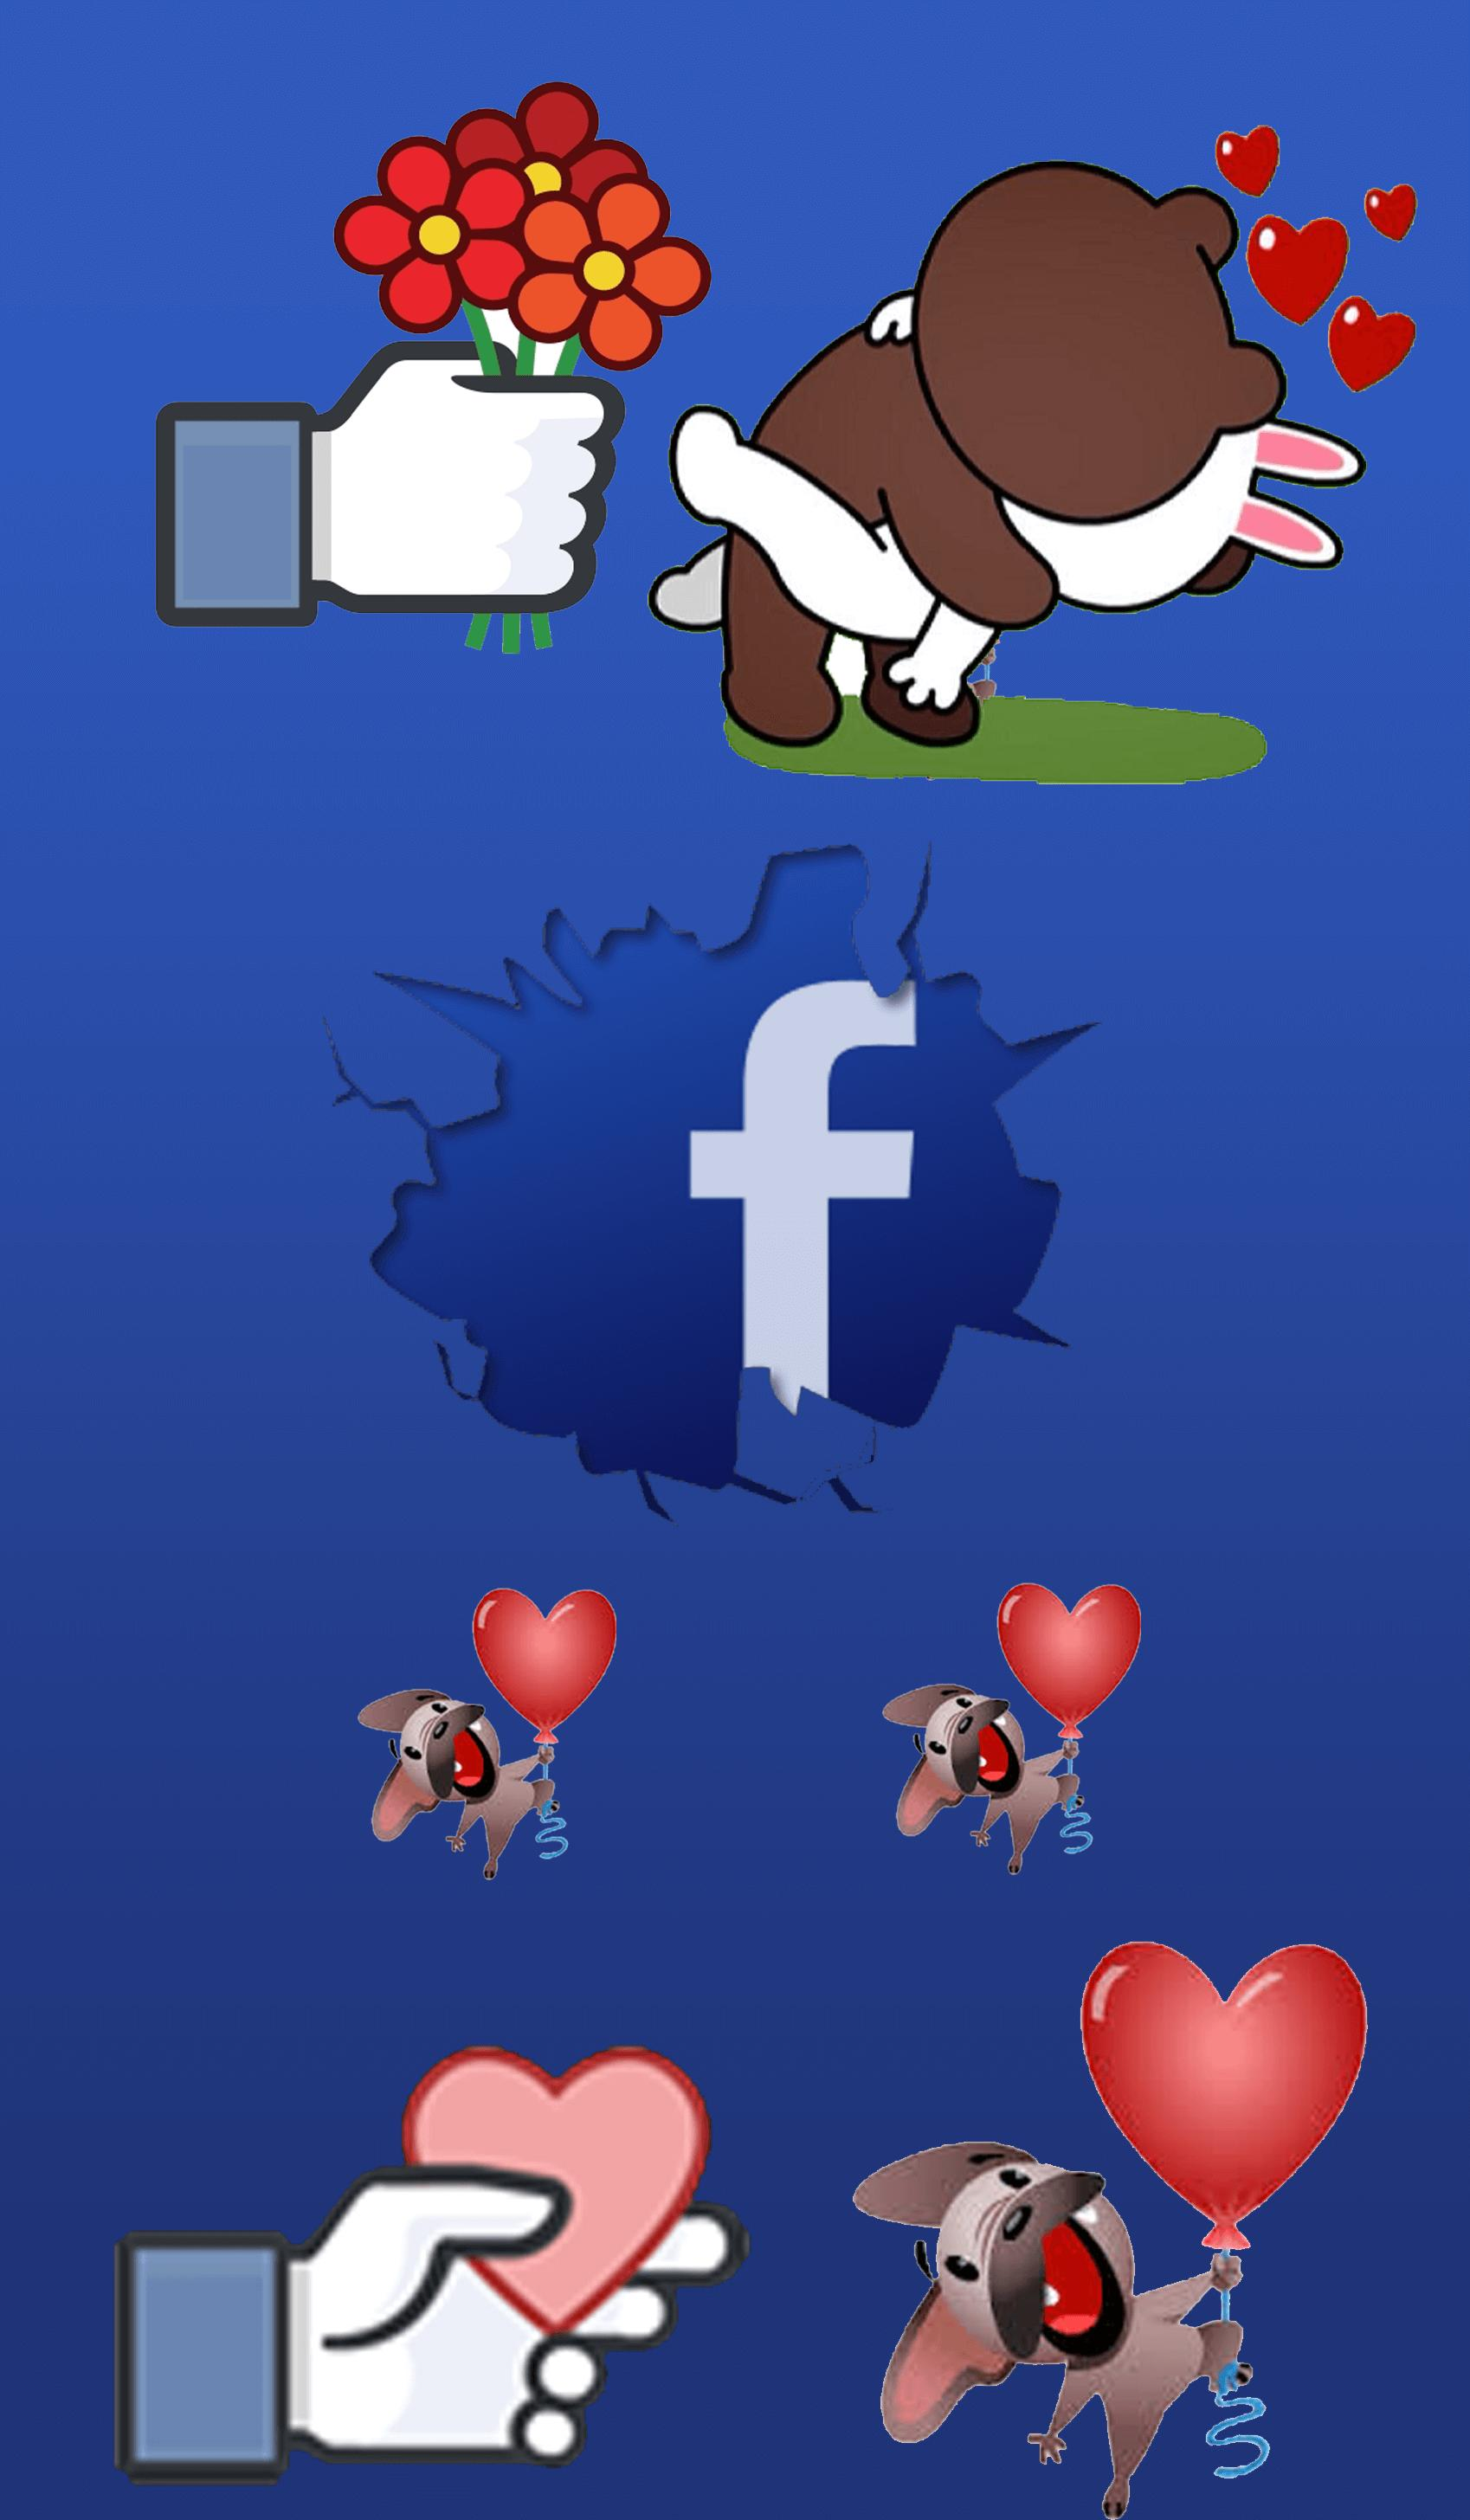 Gif Stickers for Facebook Messenger for Android - APK Download